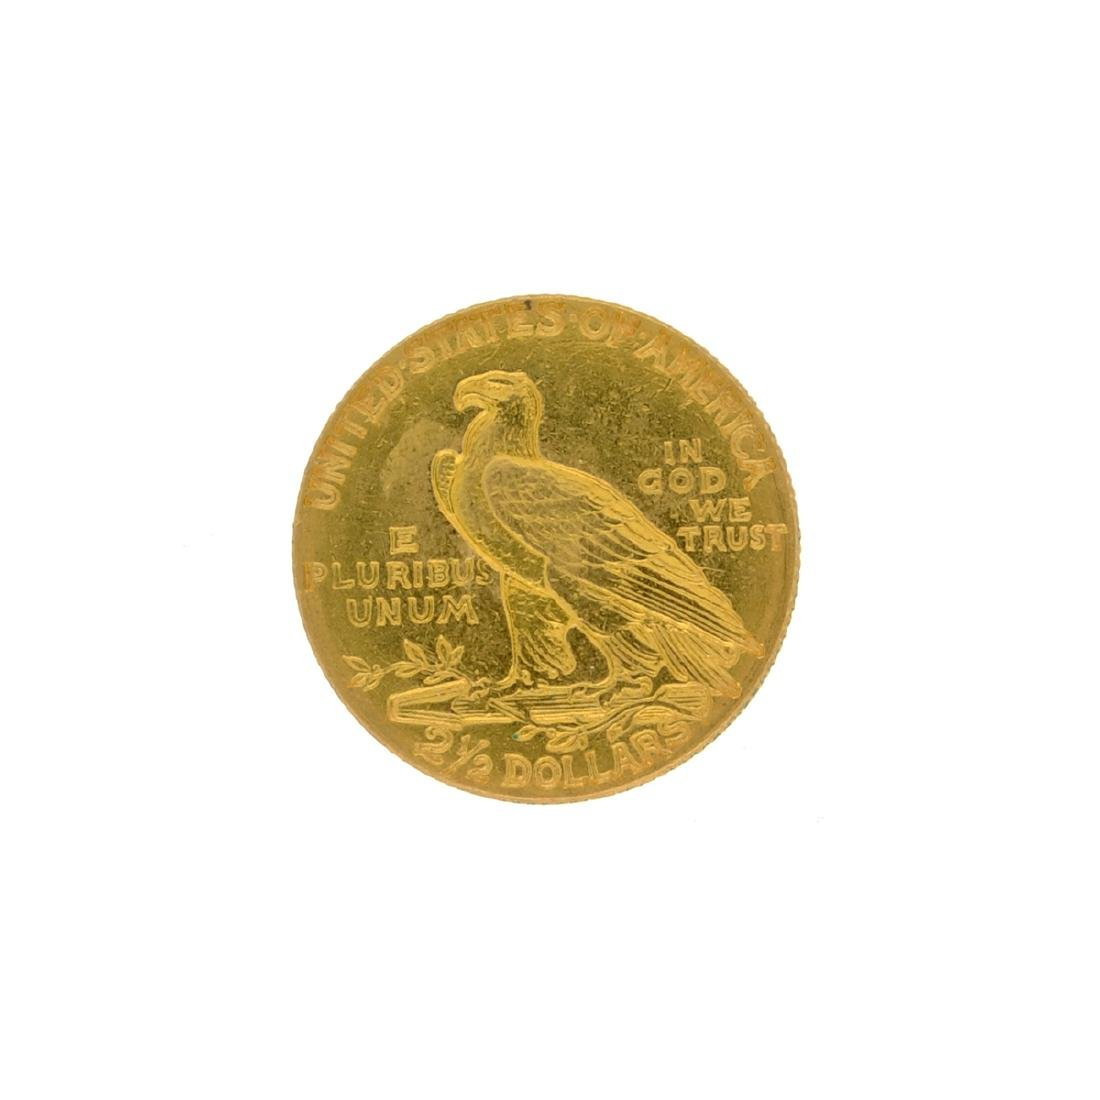 1914 $2.50 U.S. Indian Head Gold Coin - 2